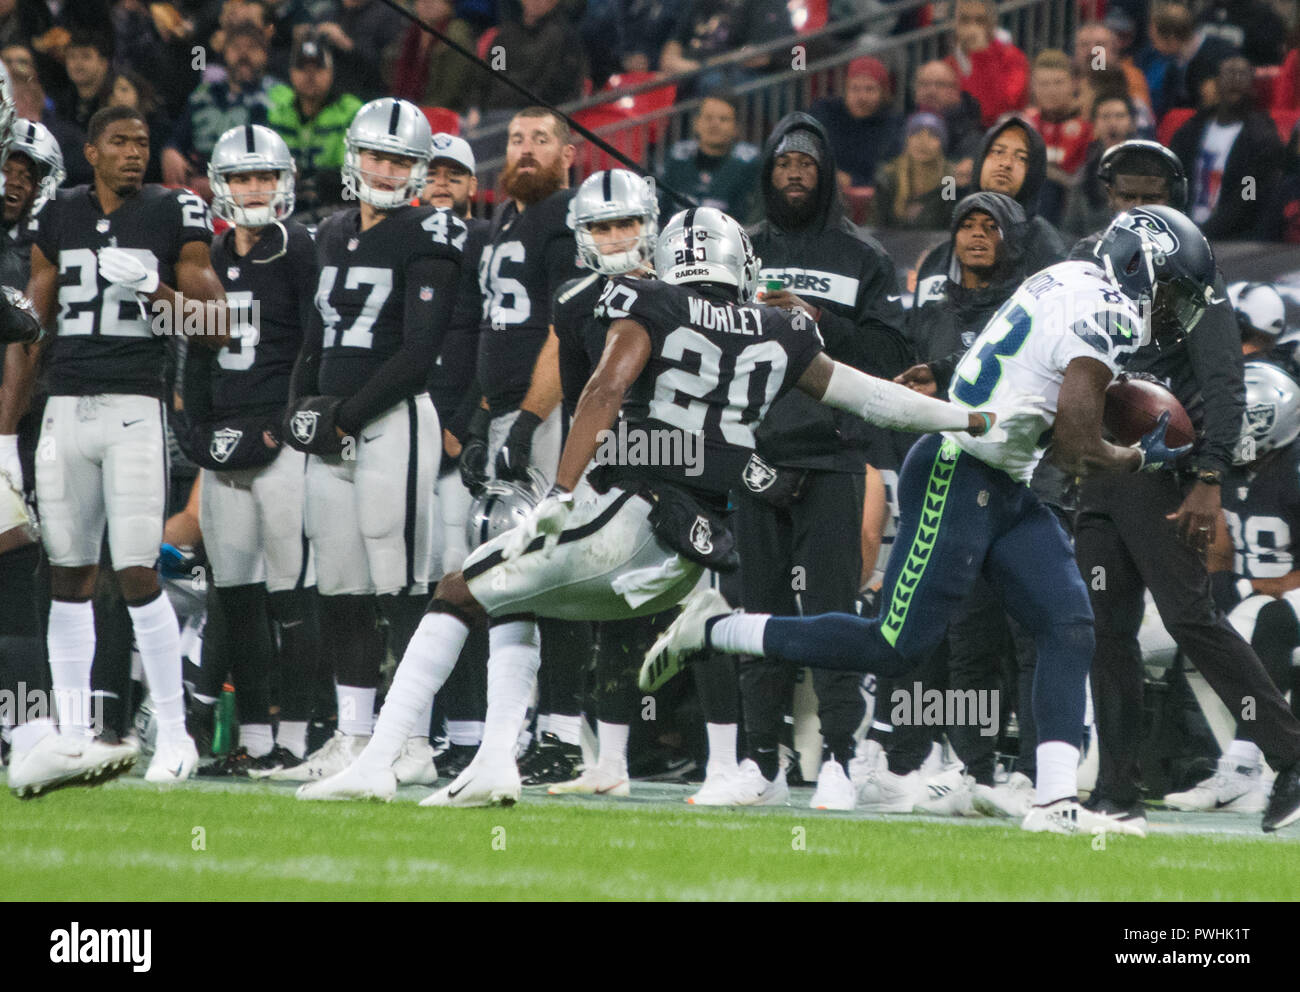 LONDON, ENG - OCTOBER 14: NFL: OCT 14 International Series - Seahawks at Raiders(Photo by Glamourstock - Stock Image